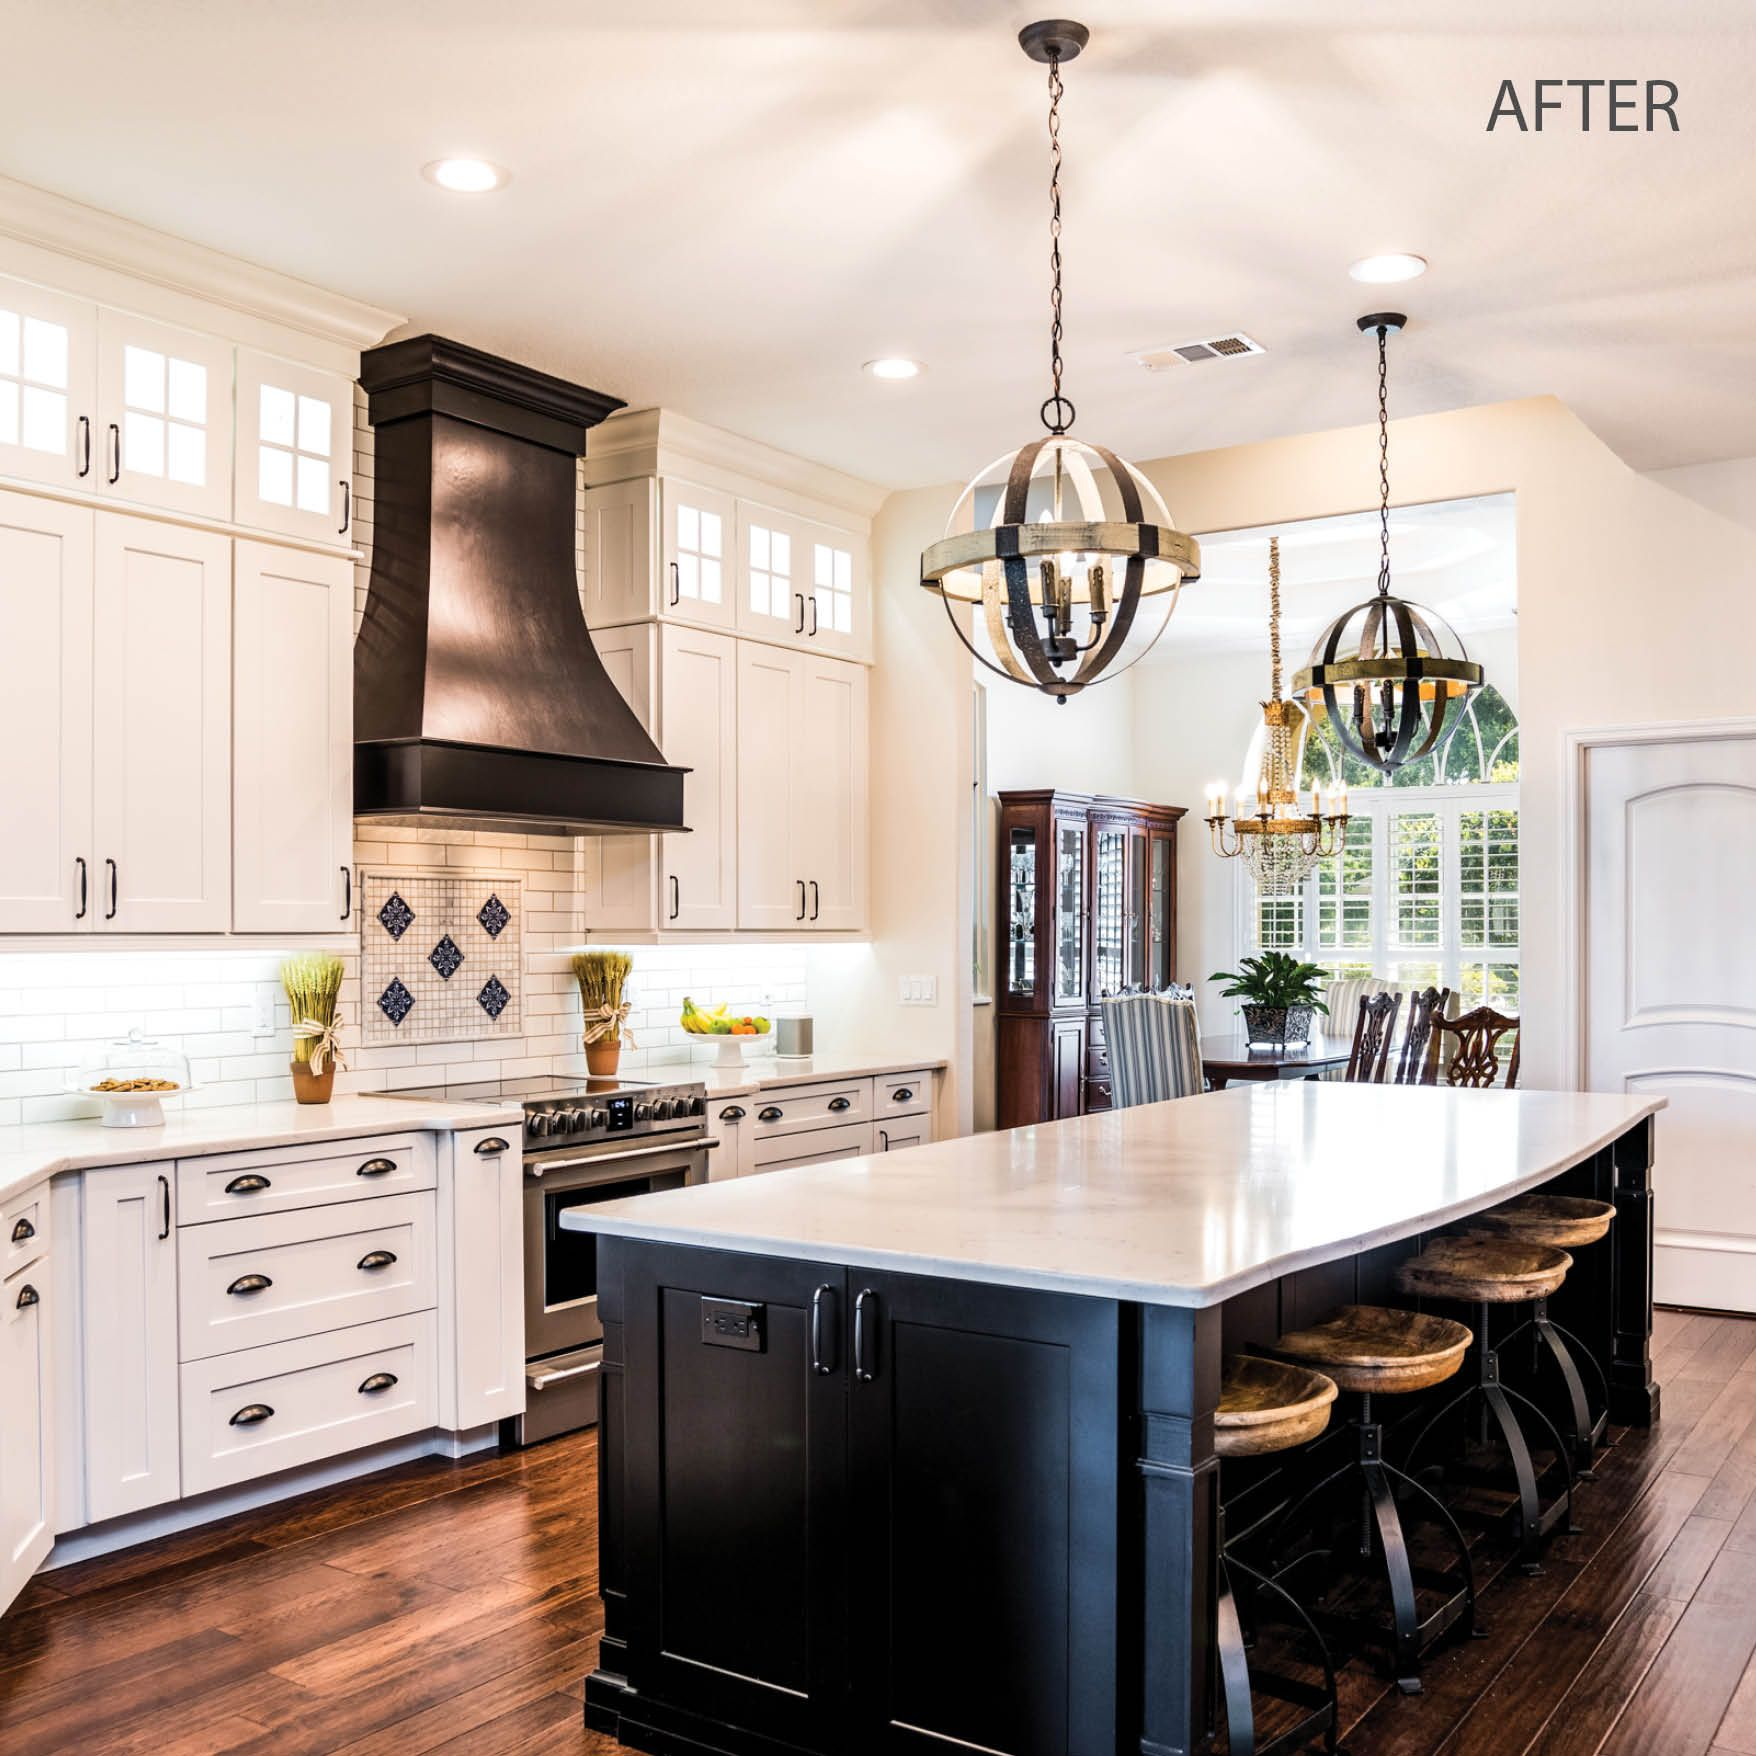 This Timeless Beauty Was Designed By Andrea Johnson Of Complete Kitchen And Bath In Lakeland Fl Us Kitchen Design Kitchen And Bath Design Kitchen Inspirations